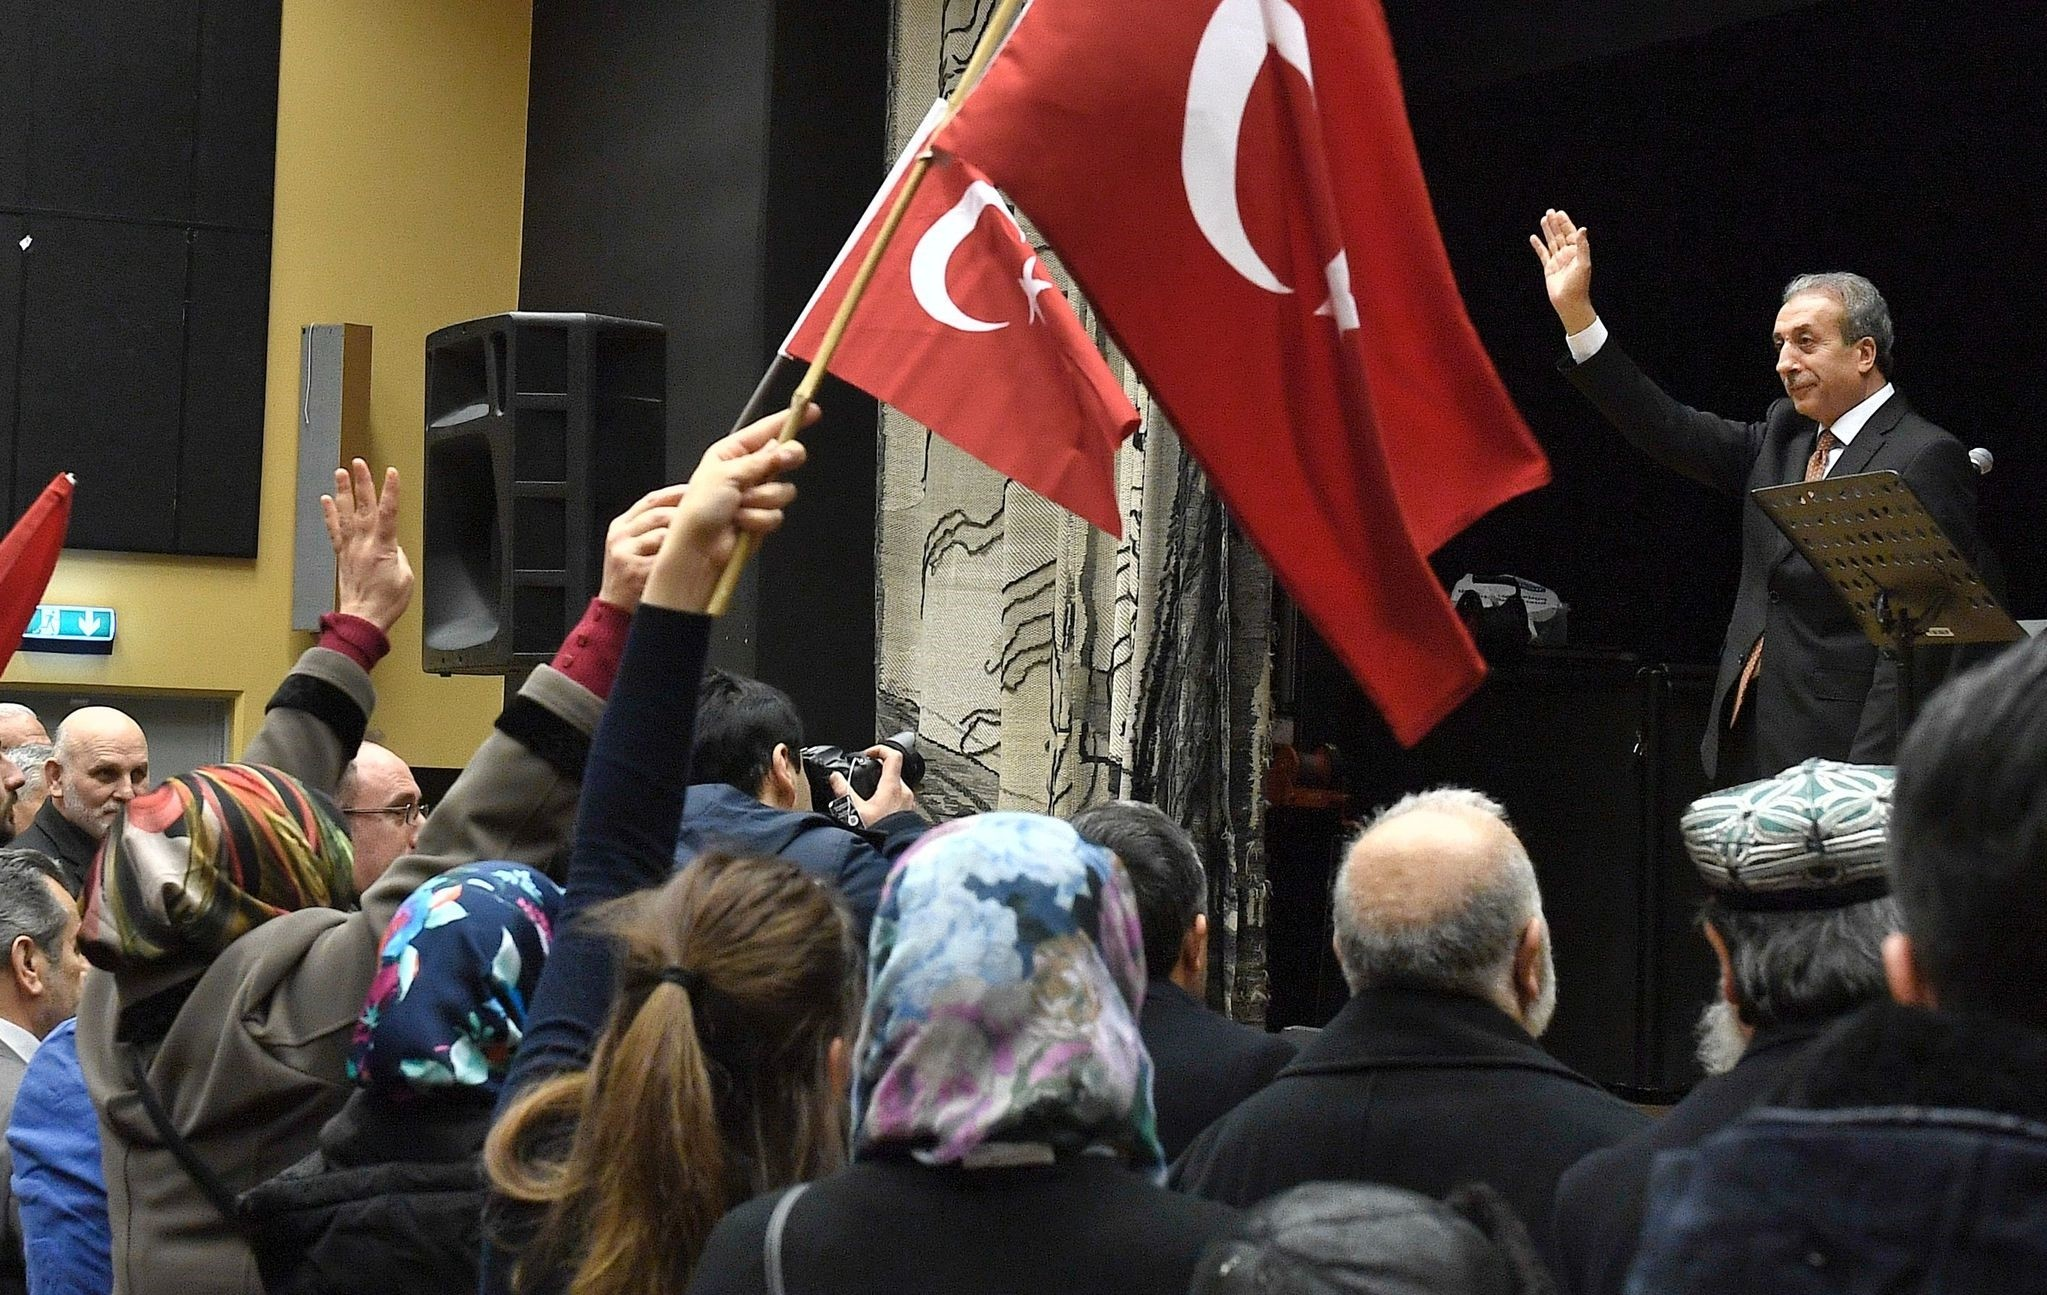 Turkish politician Mehmet Mehdi Eker attends a campaign meeting in Fittja, Sweden, on March 12, 2017.  (AFP PHOTO)